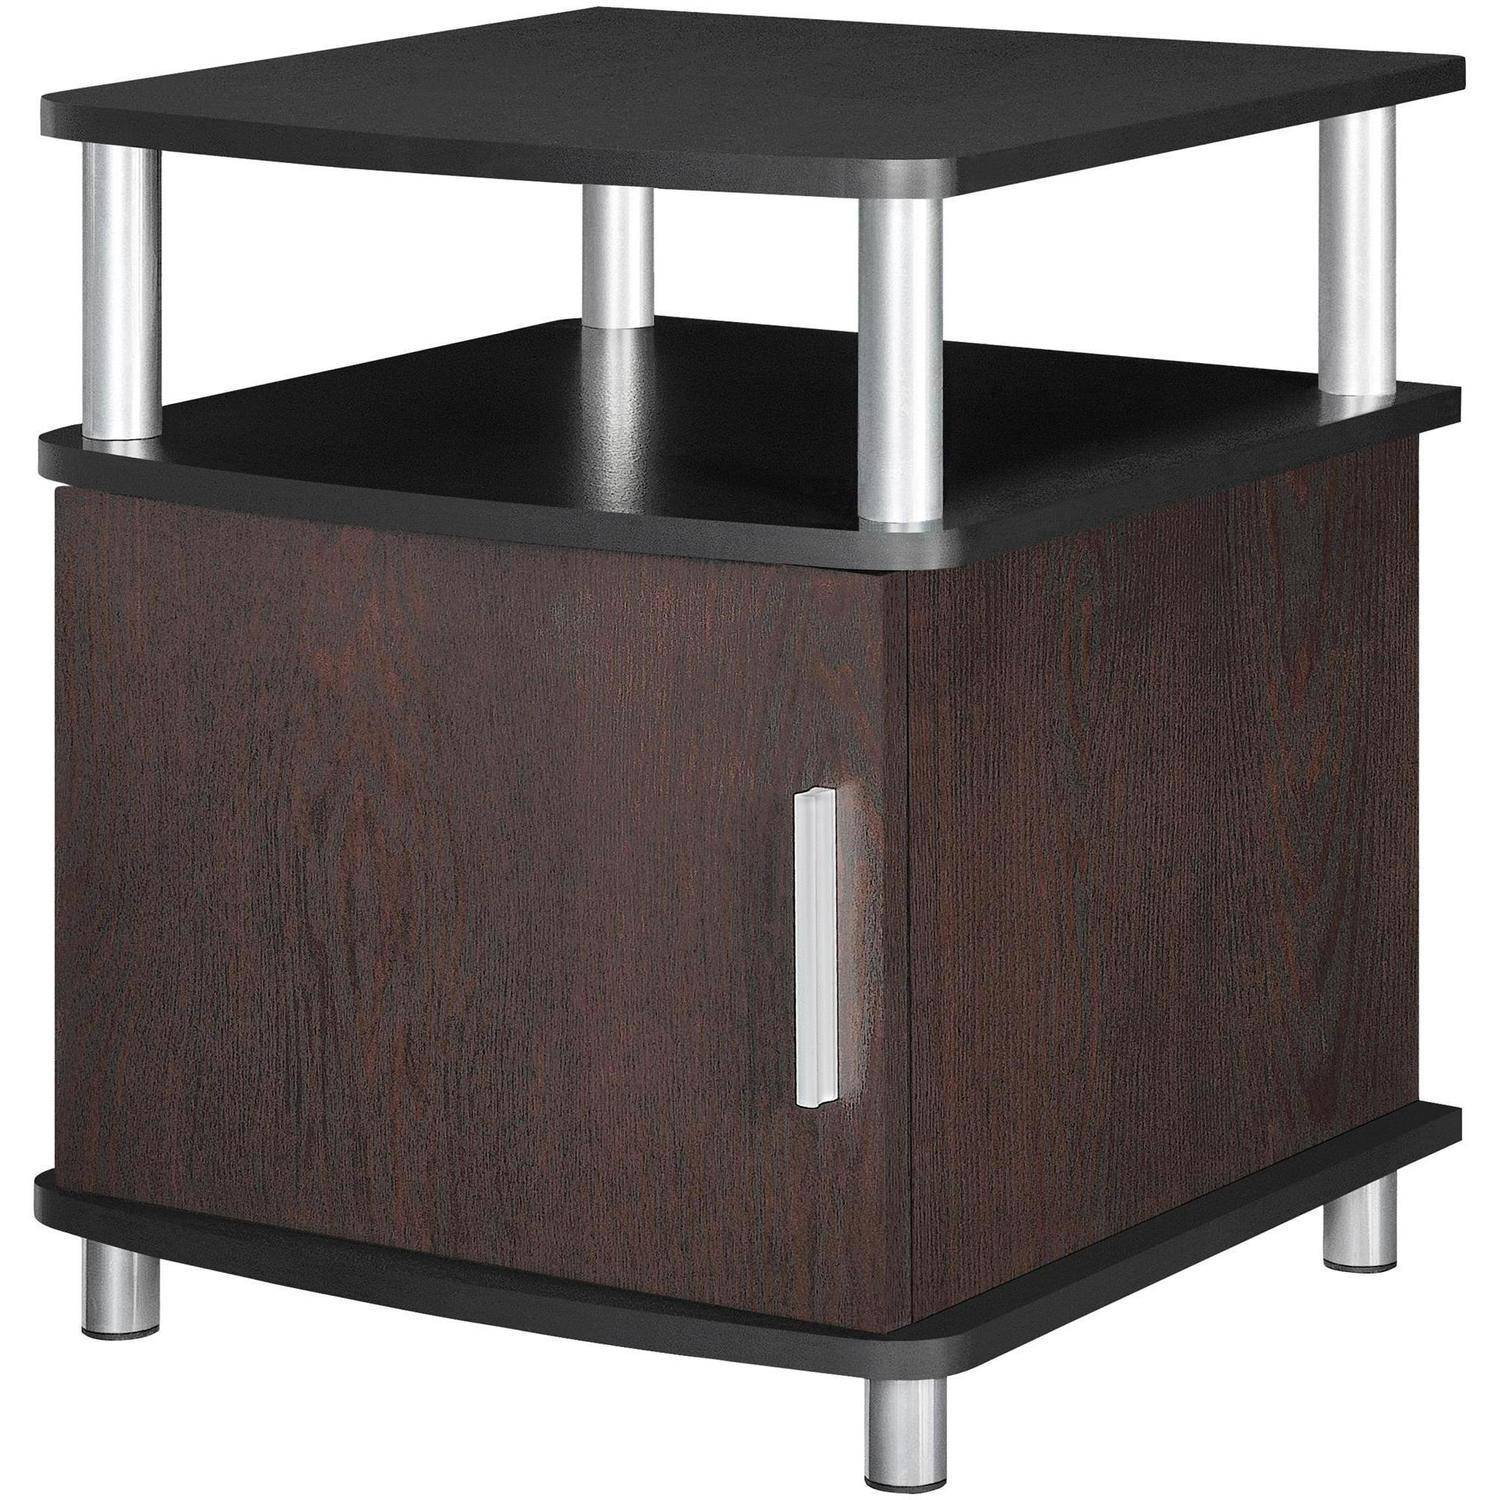 Ameriwood Home Carson End Table With Storage, Espresso/Silver   Walmart.com